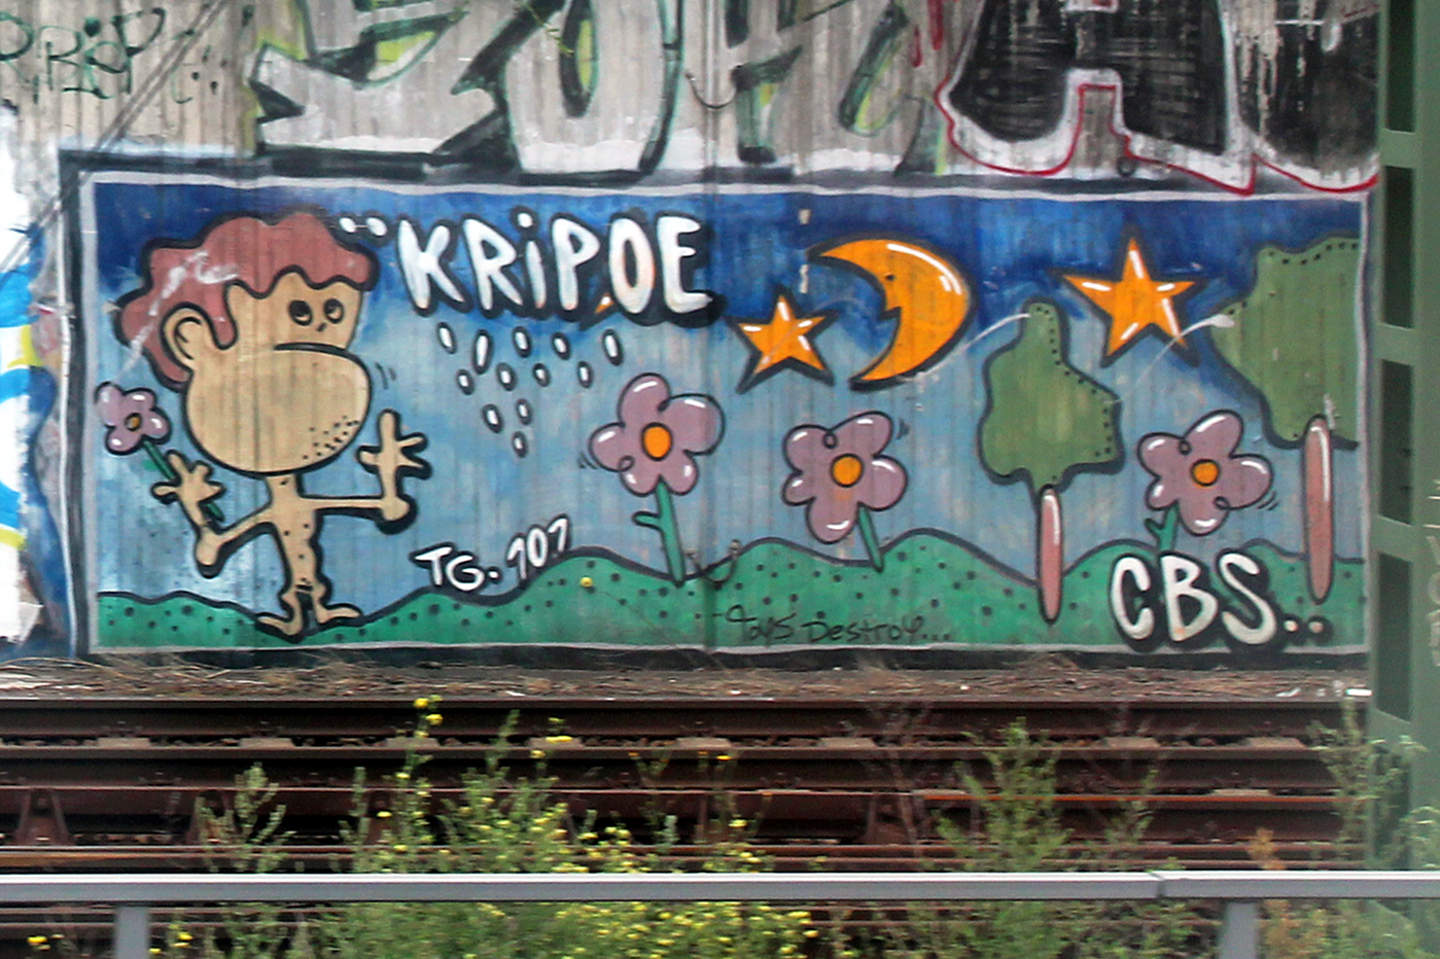 "Kripoe CBS Crew (Cowboys) ""Kripoe""  piece near Schnoenhauser Alle station in Berlin. Graffiti photo by Street Art Berlin"